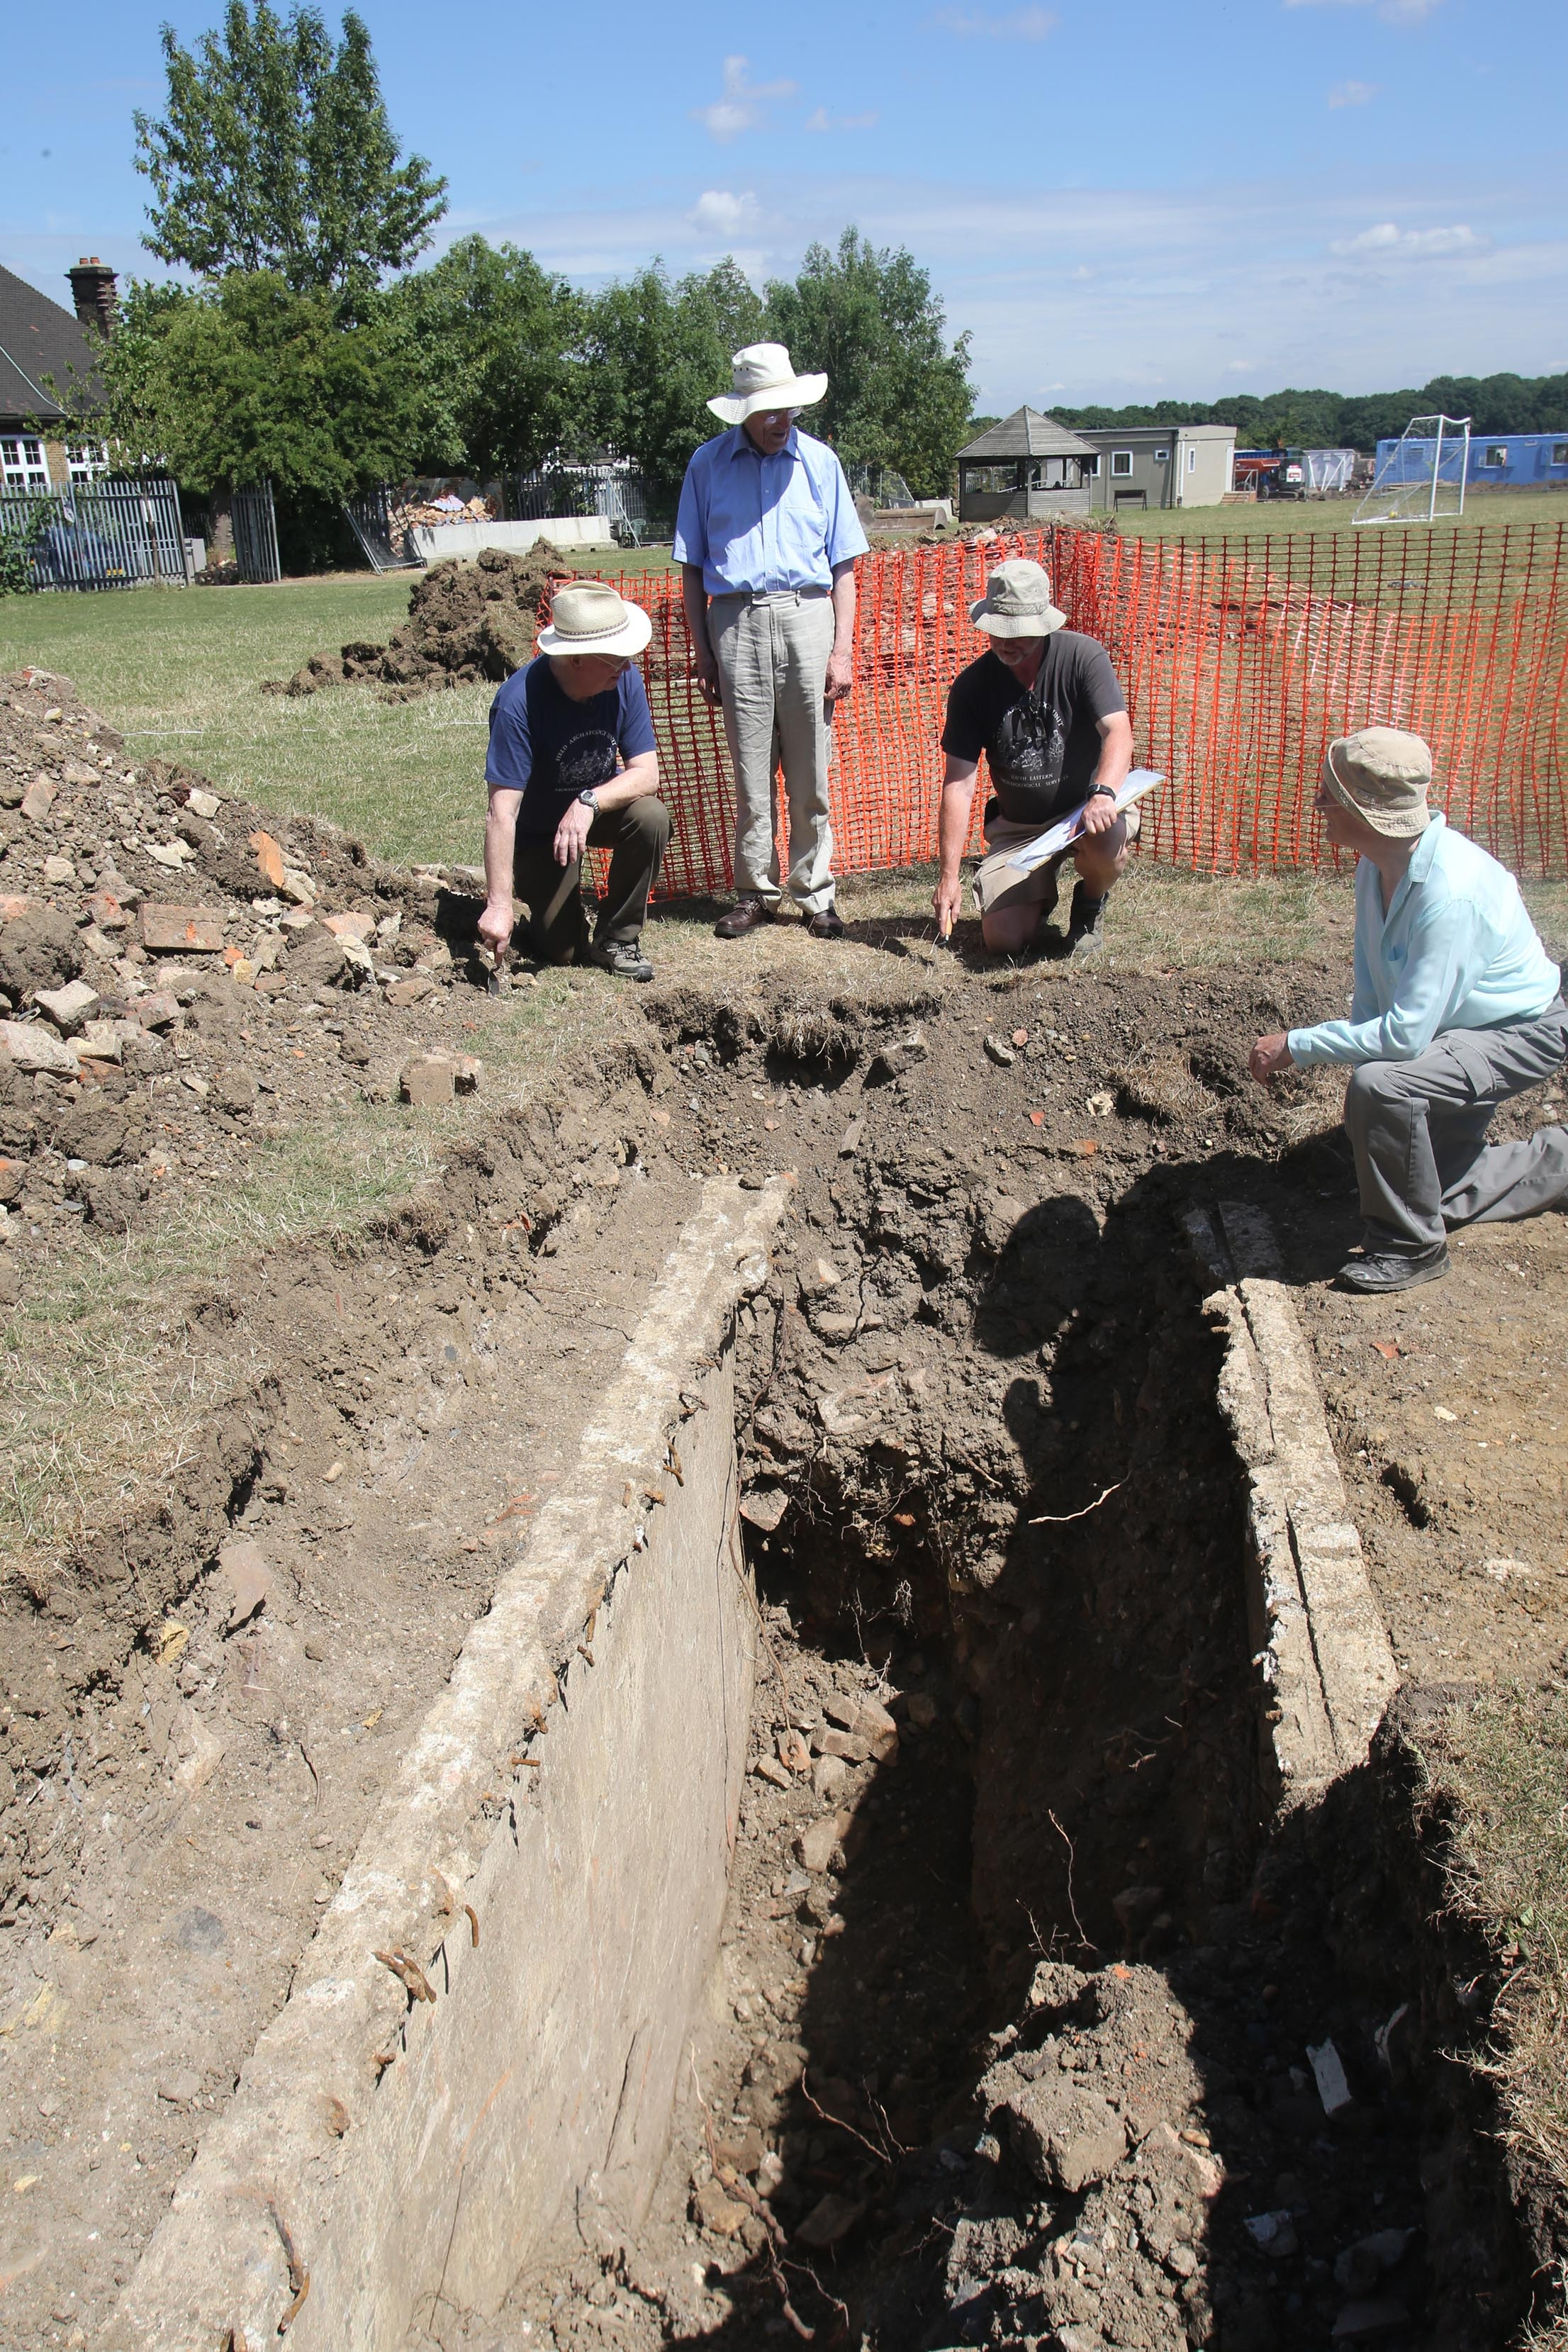 Members of the archaeological society puzzle over the bunker